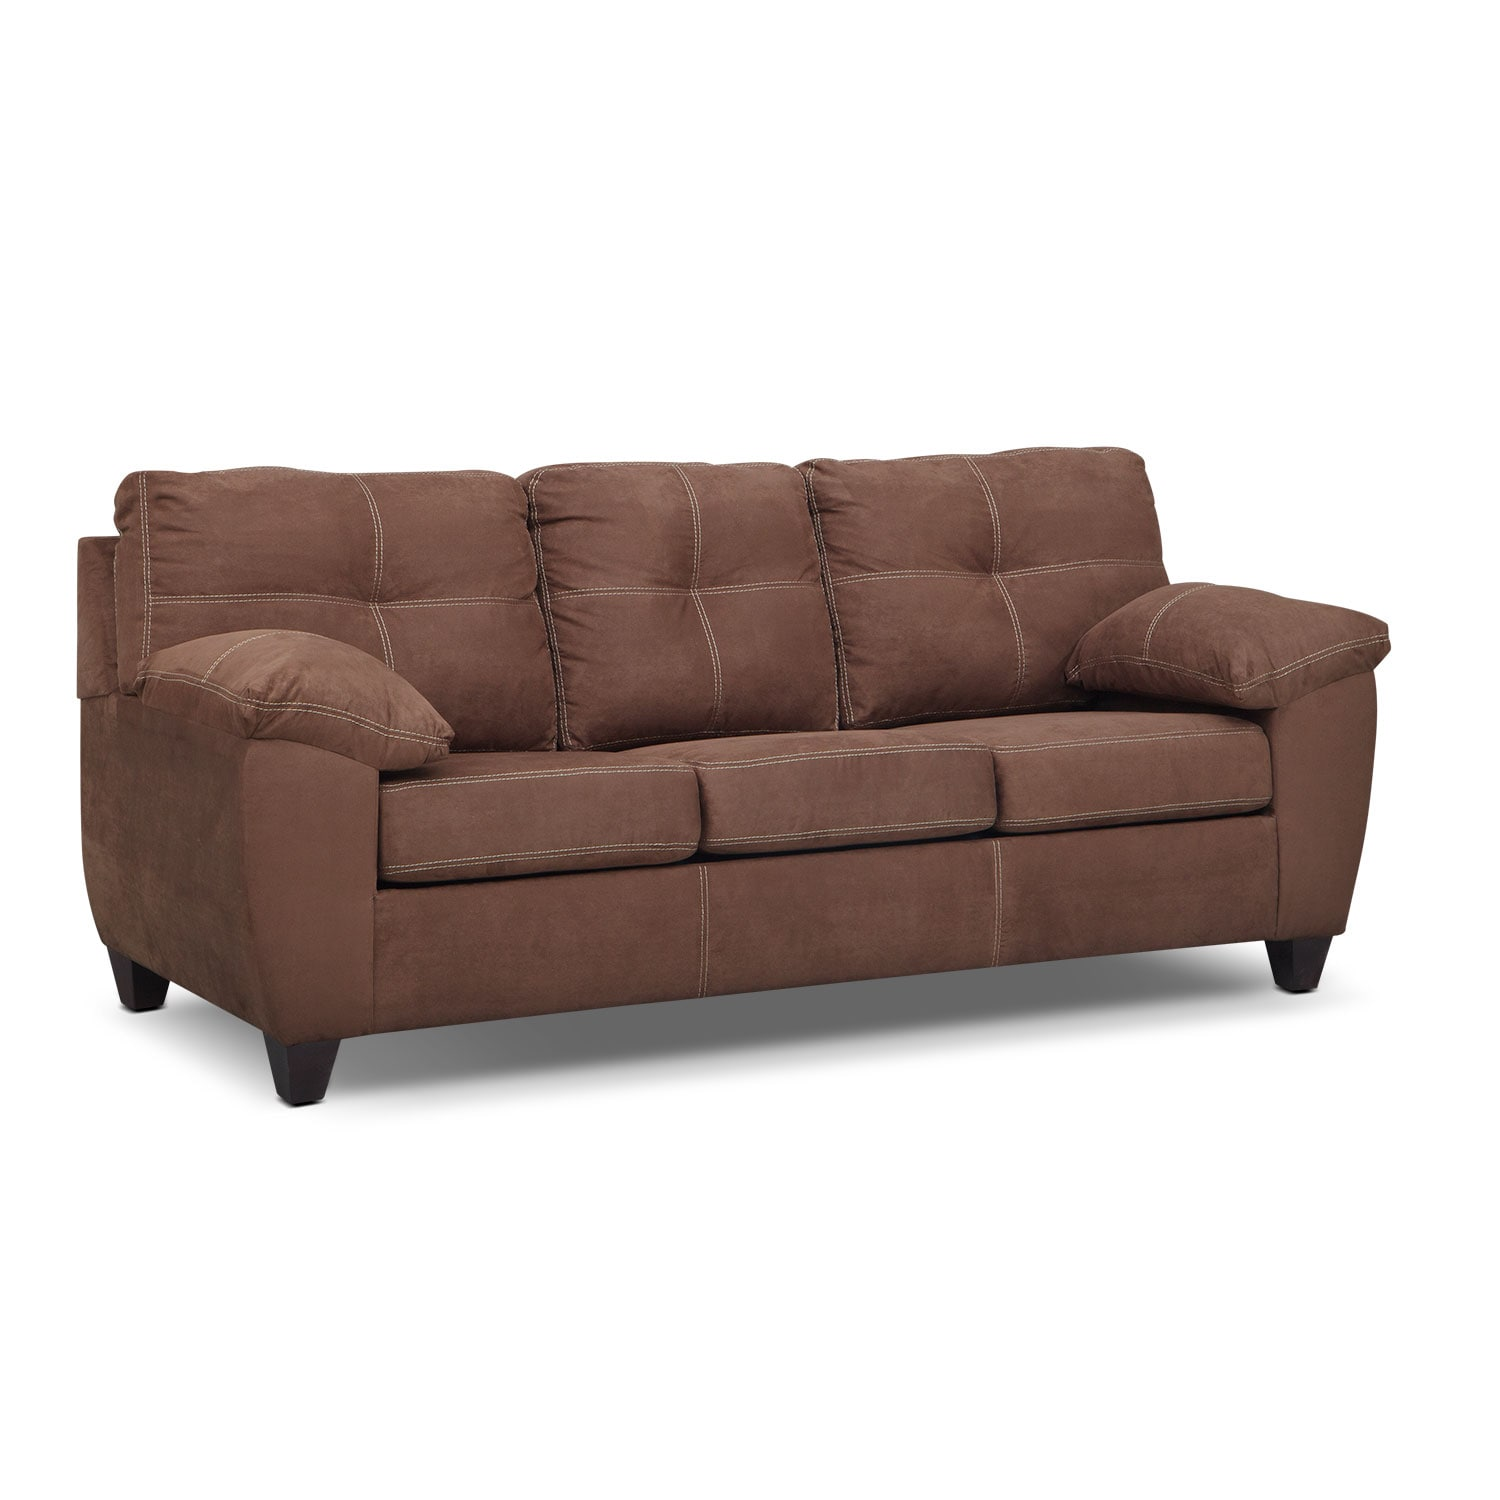 Living Room Furniture - Rialto Sofa - Coffee